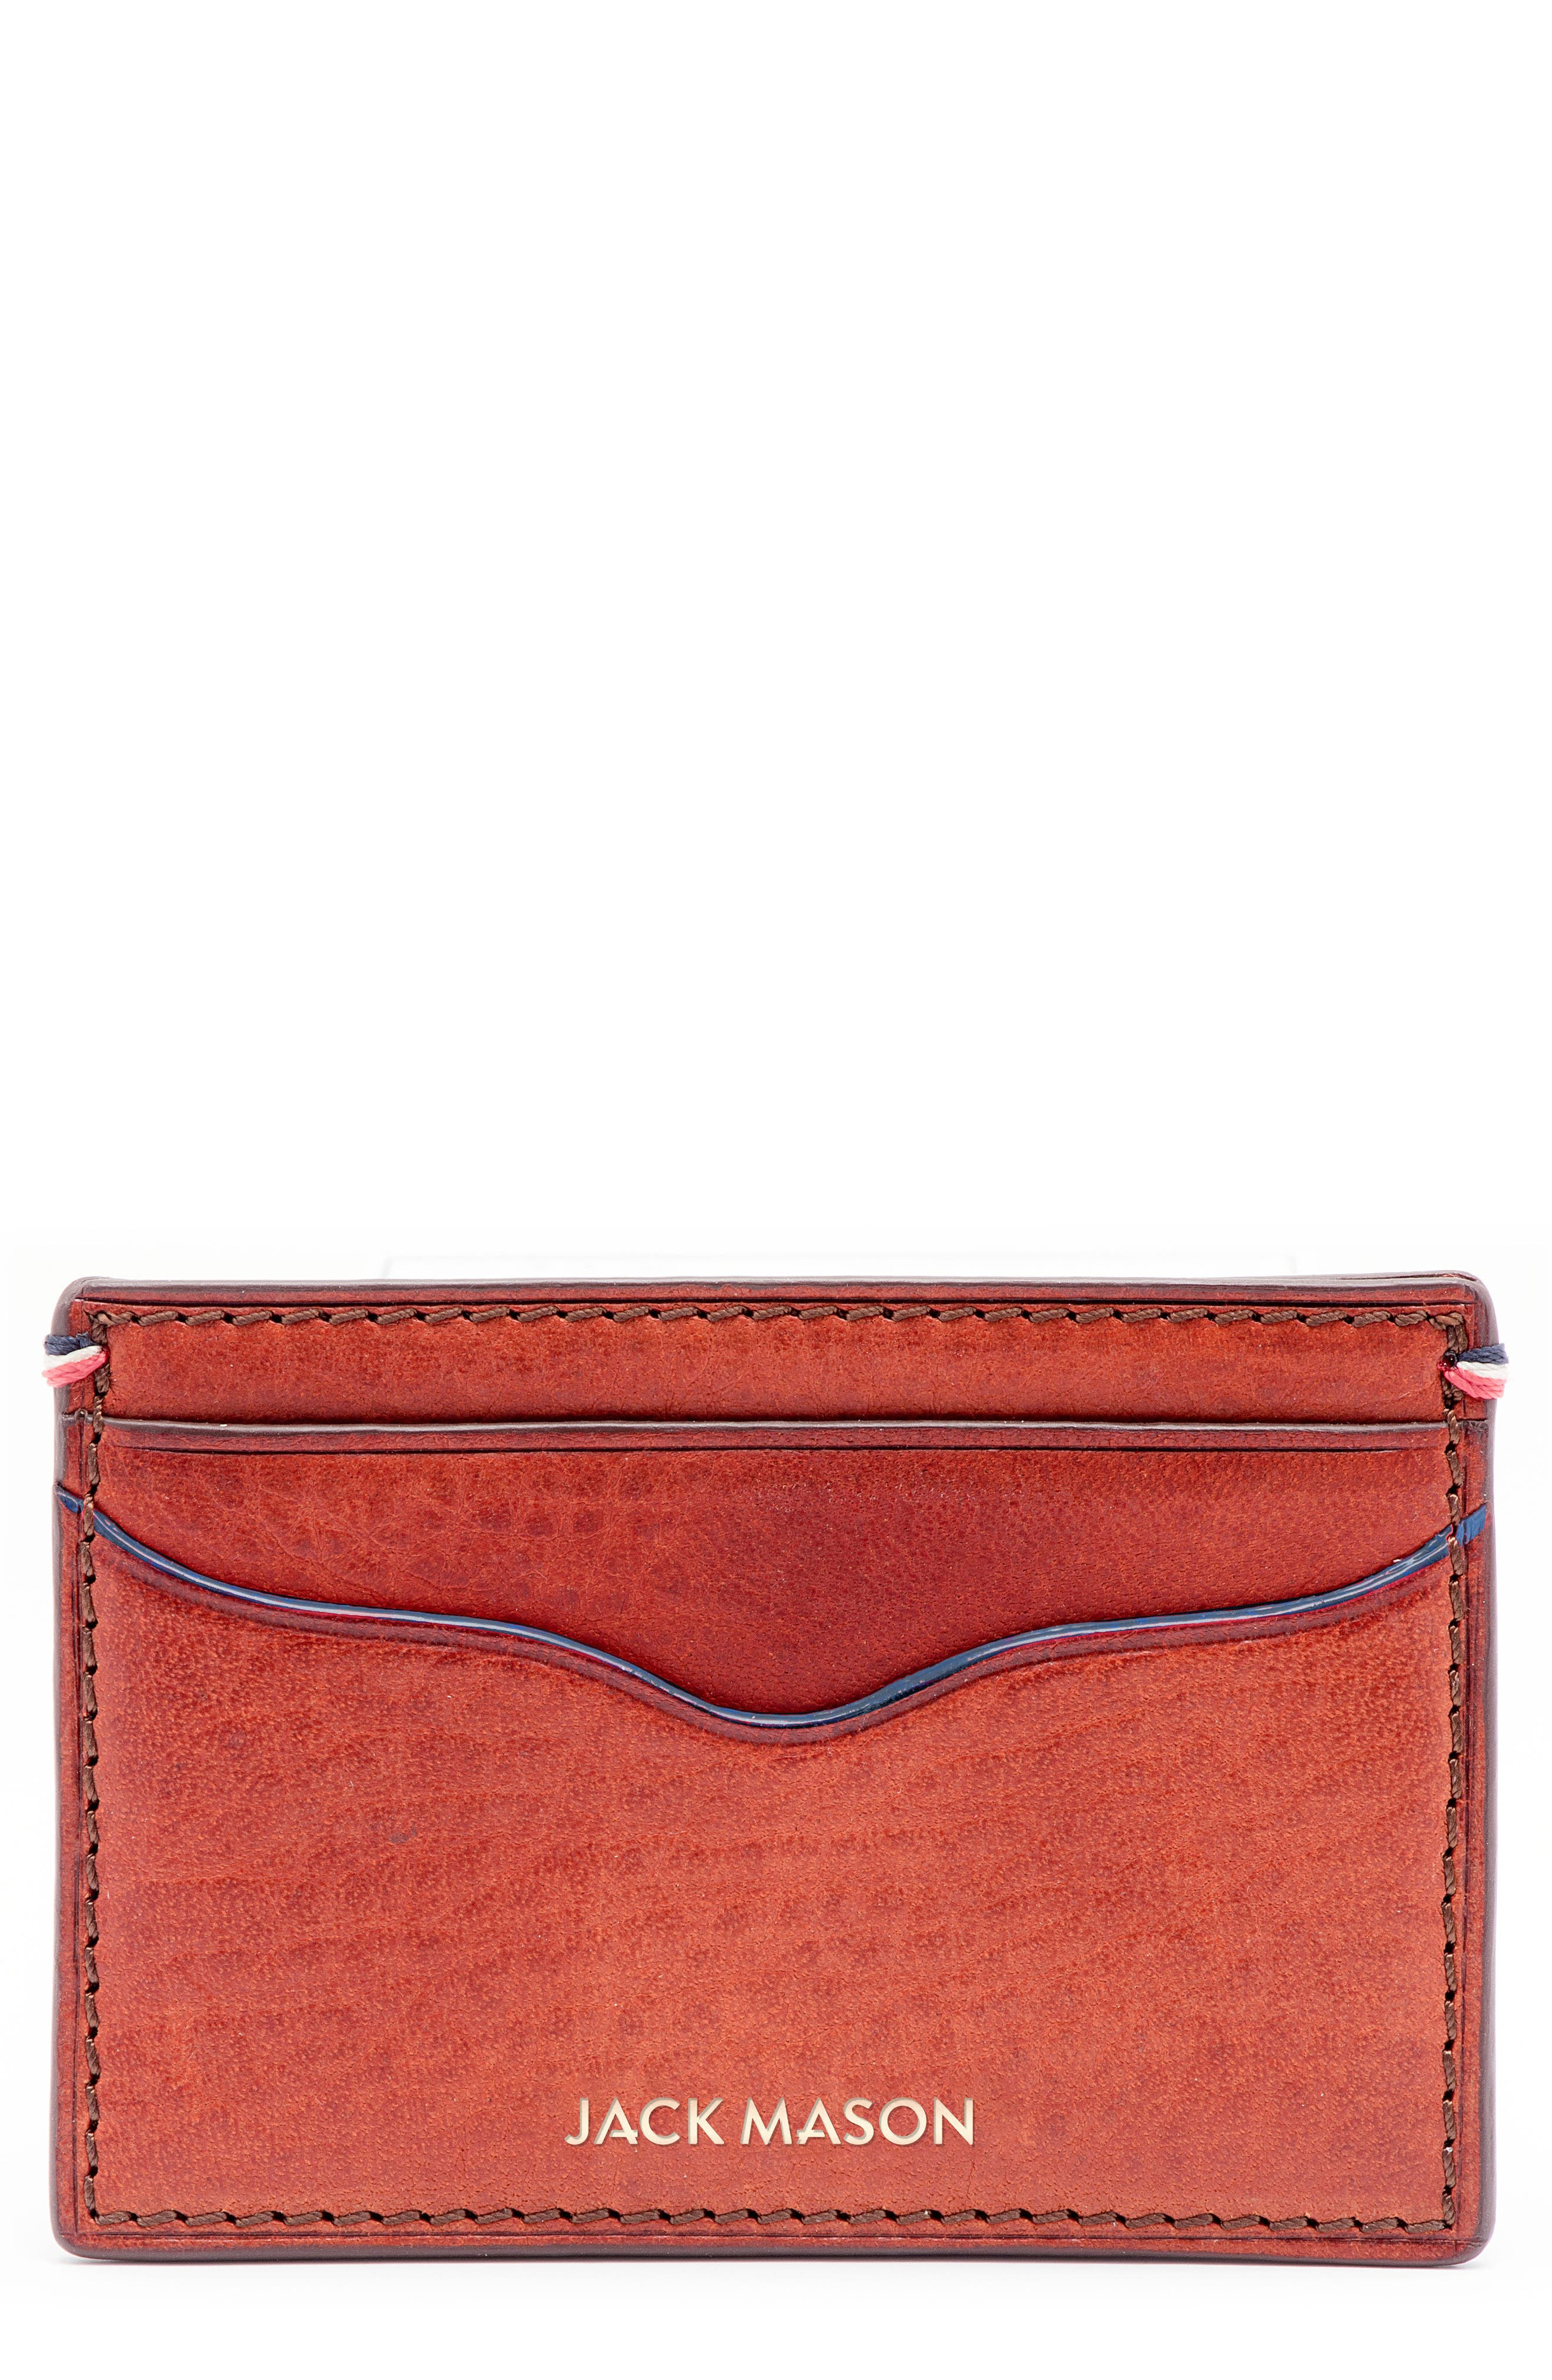 Pebbled Leather Card Case,                             Main thumbnail 1, color,                             800